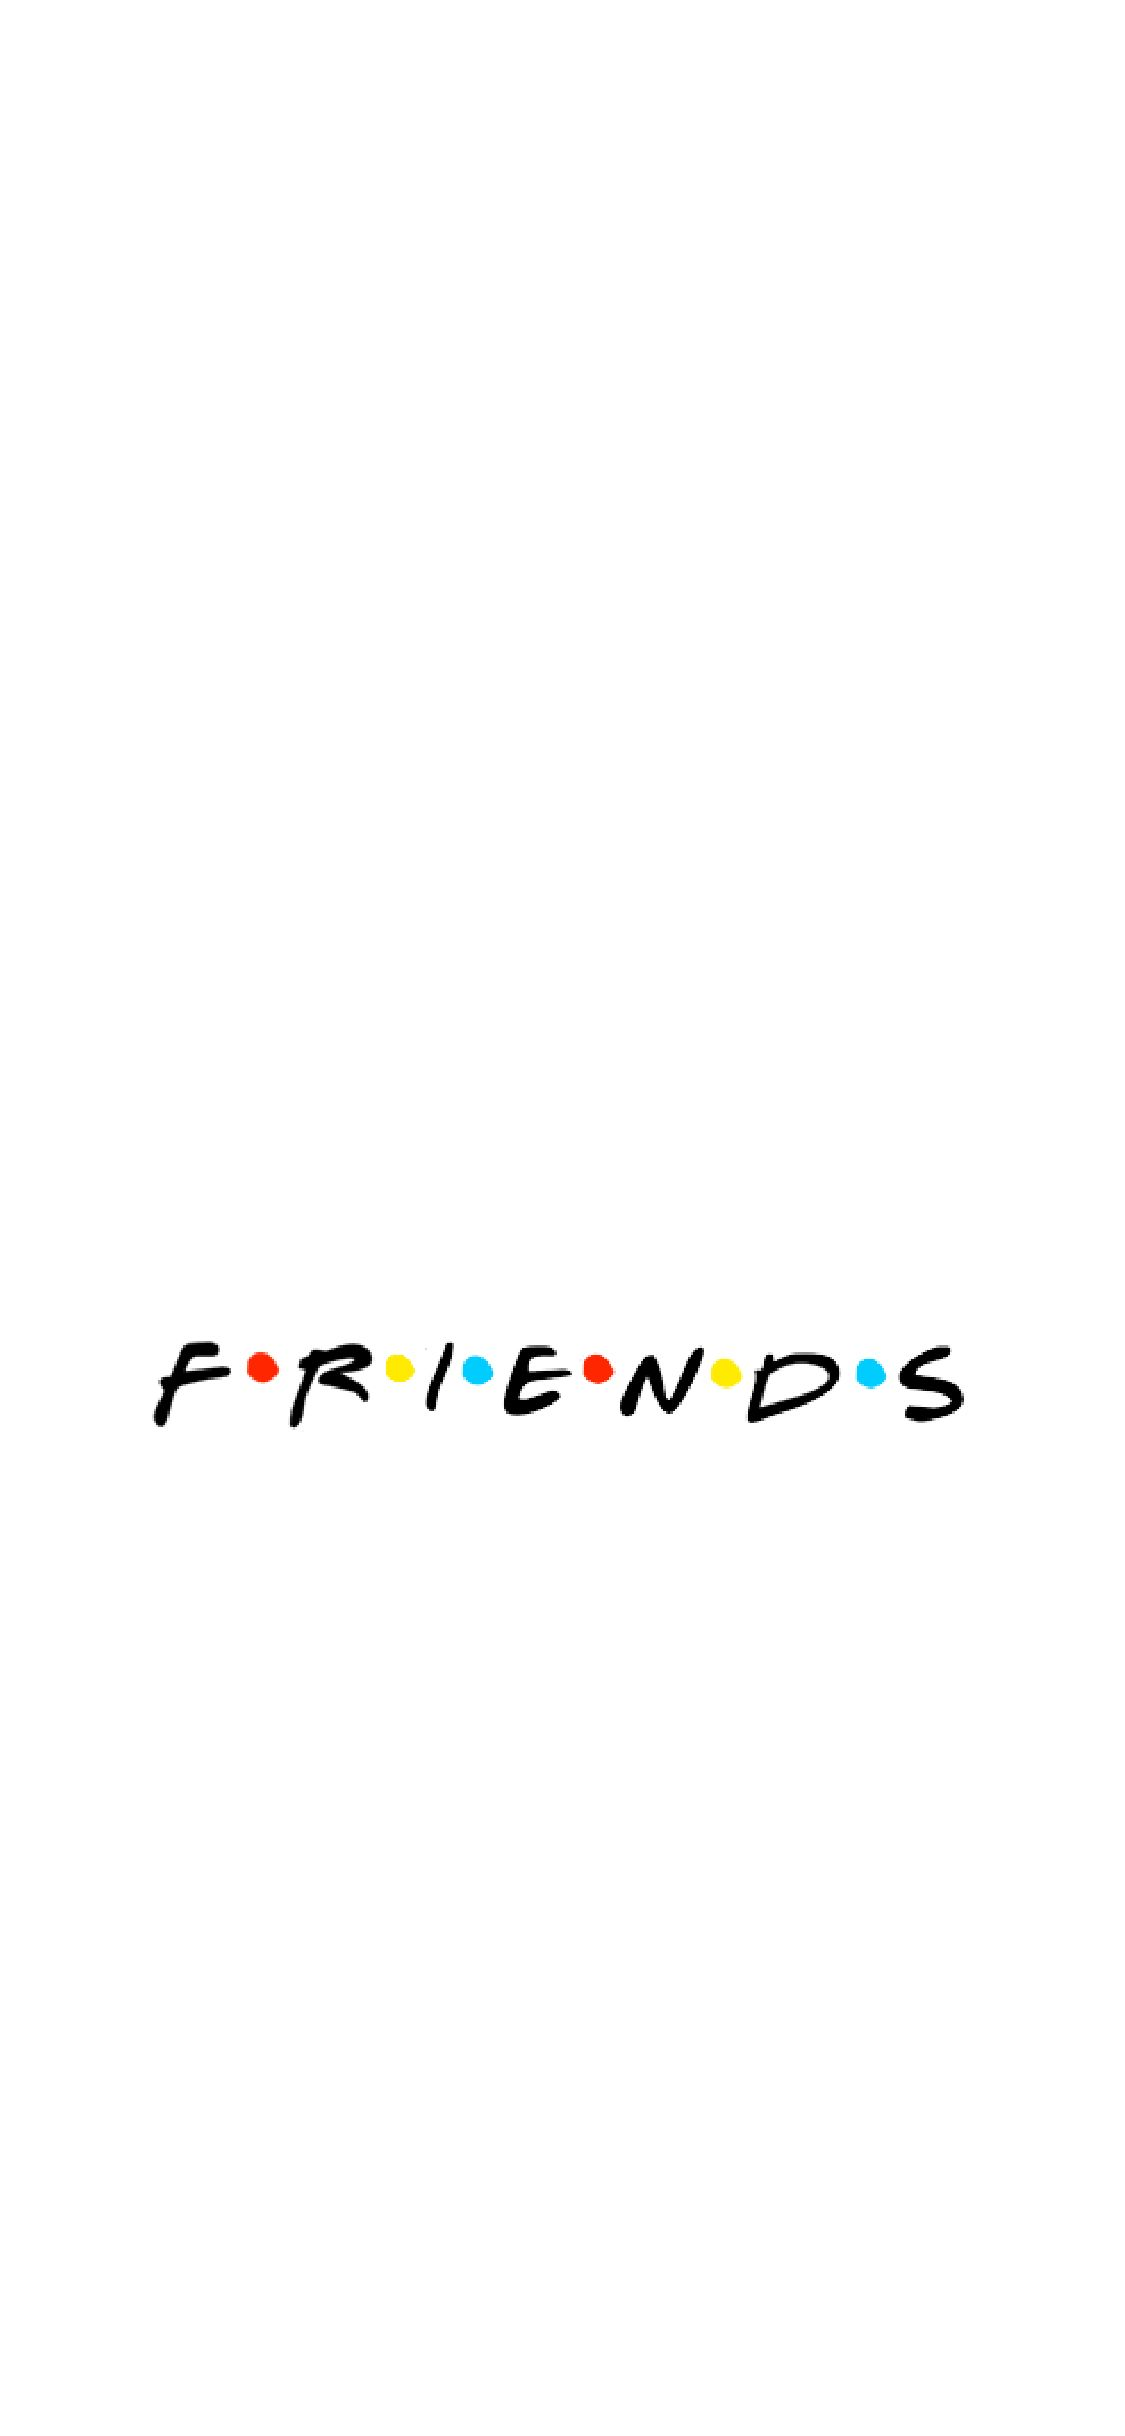 The best Friends iPhone wallpapers and backgrounds